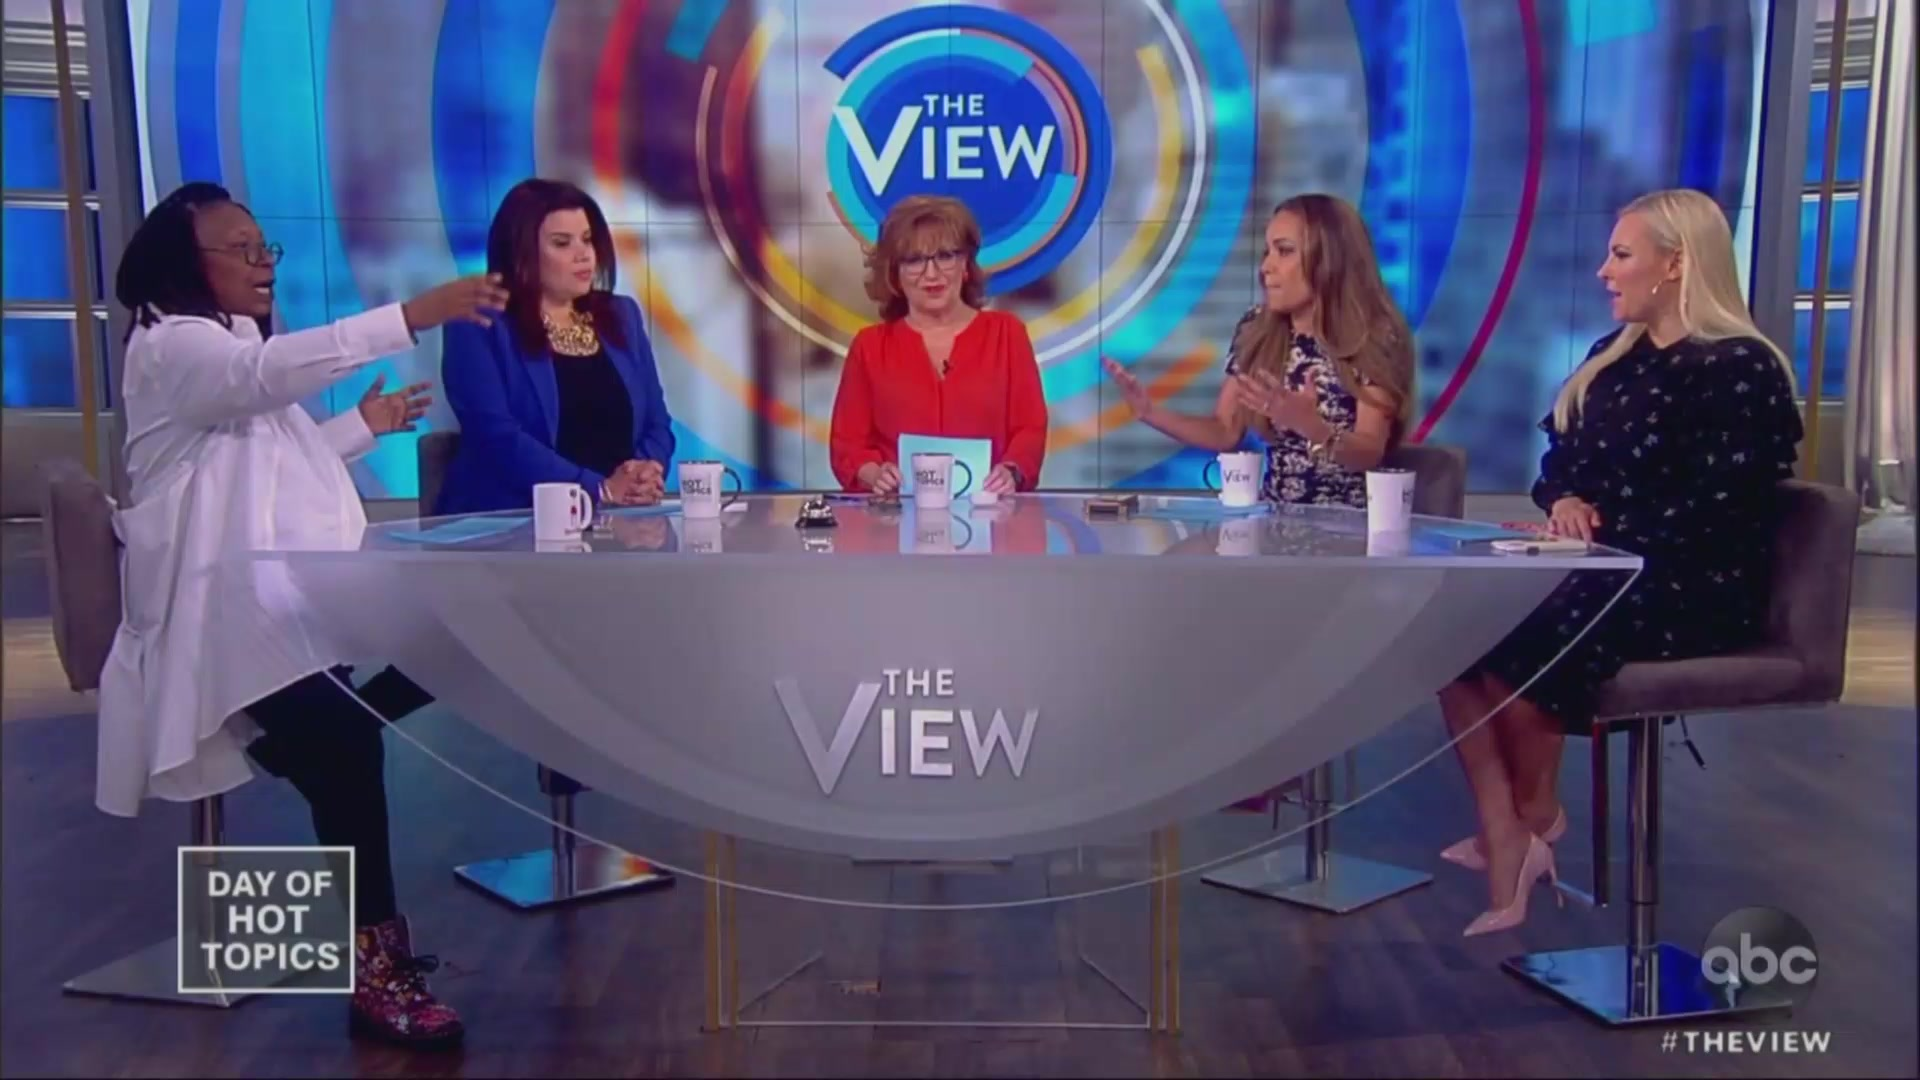 Whoopi Goldberg Chastises Meghan McCain for Saying Liberals Don't Believe in Science on Abortion